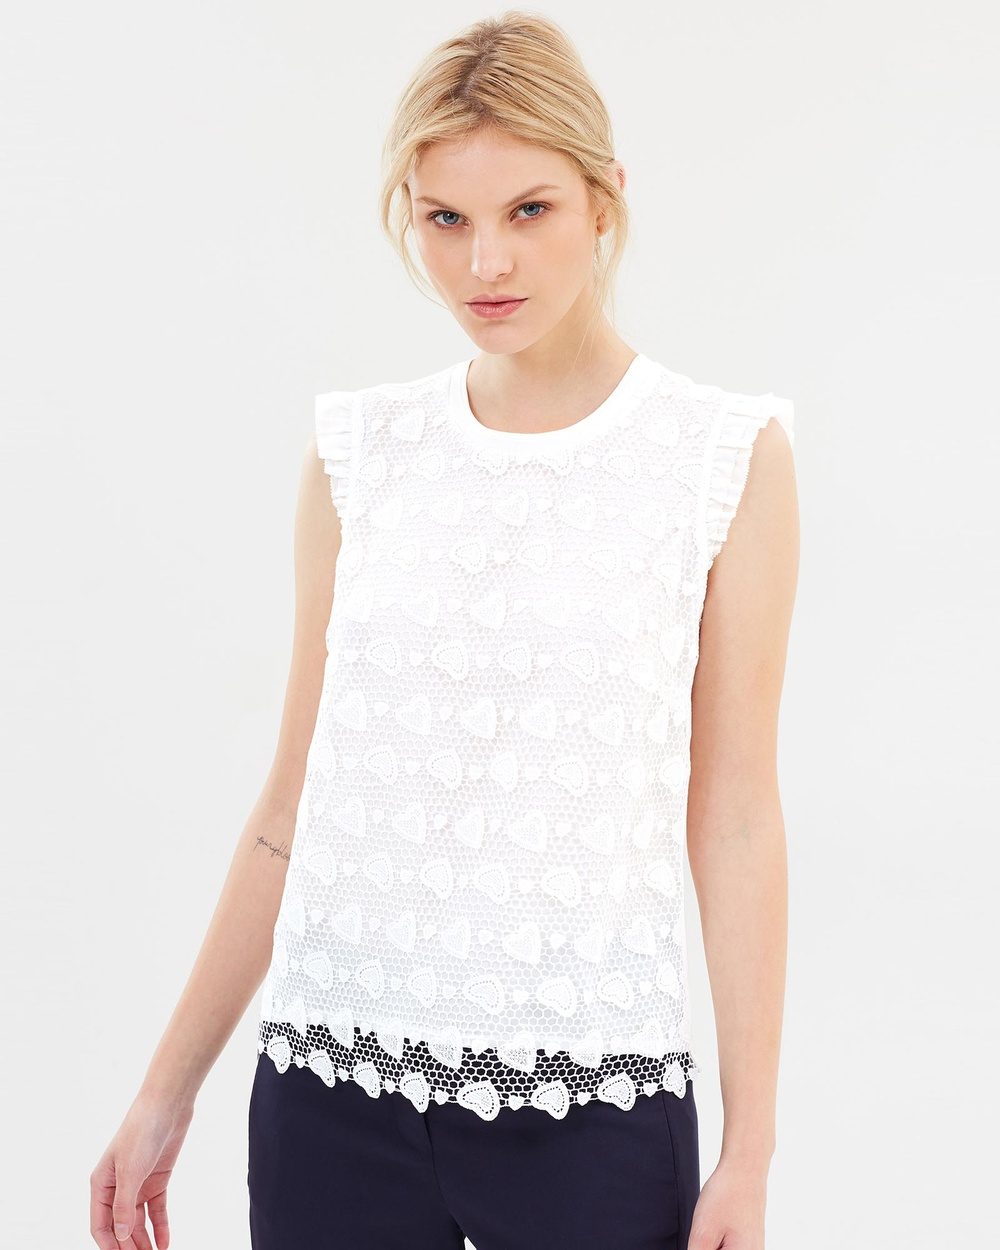 Marcs Woven Hearts Lace Top Tops Ivory Woven Hearts Lace Top